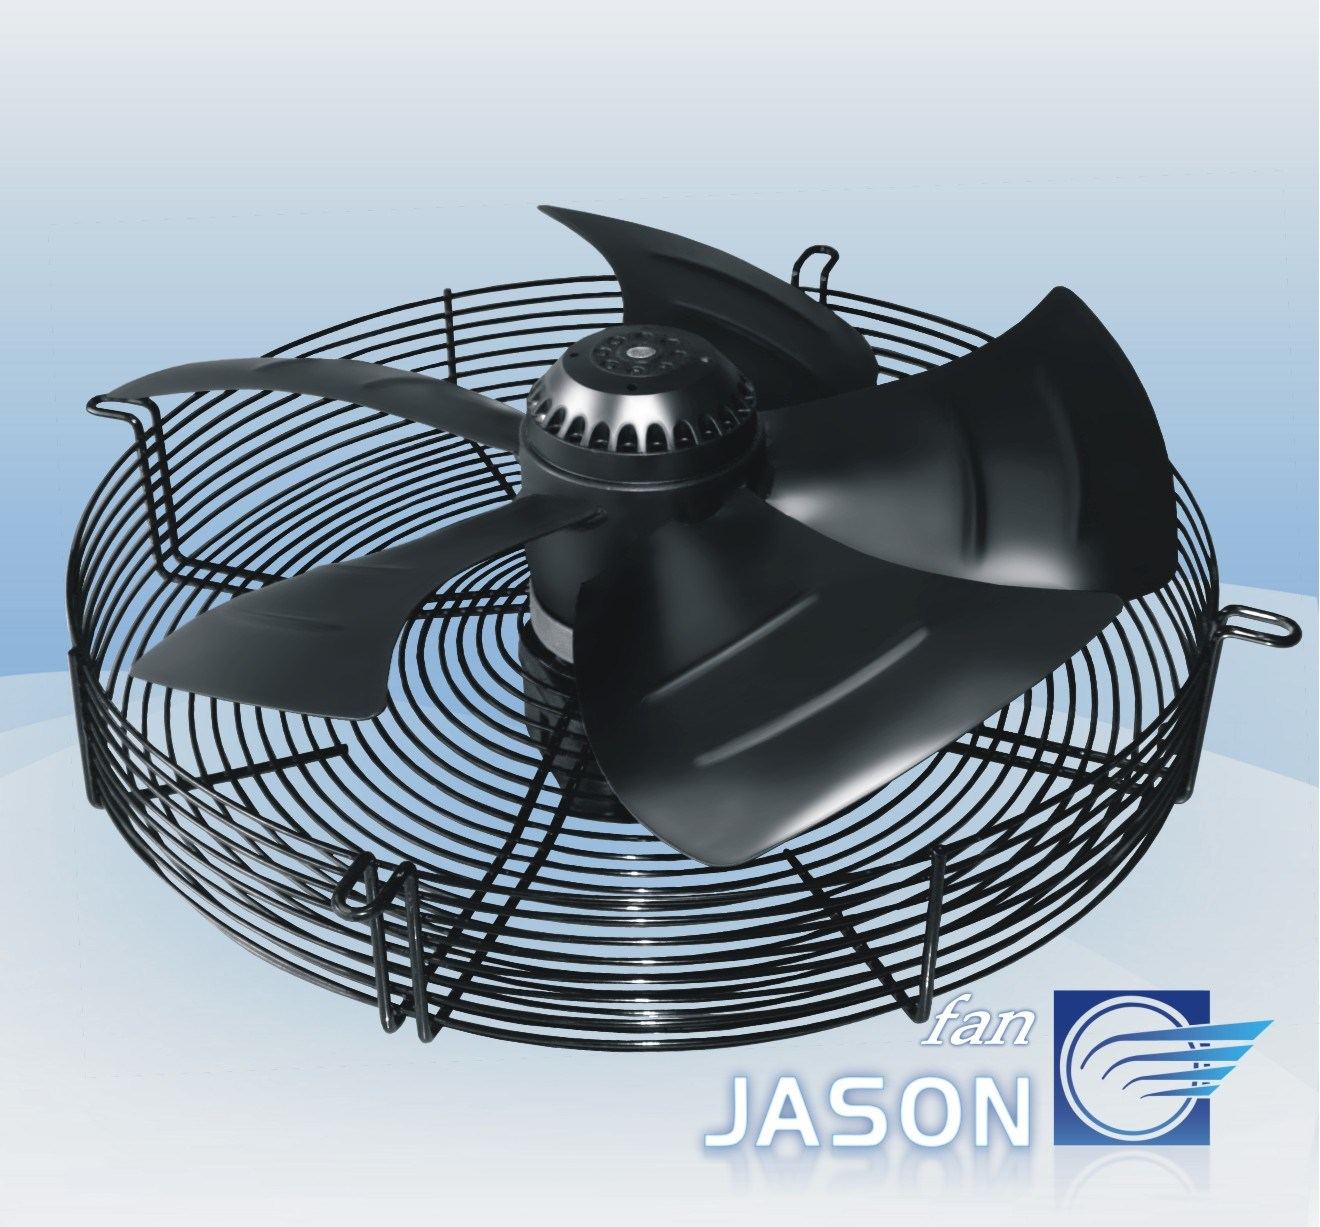 images of Superior Air Conditioner Exhaust Fan (FJ4E 450) #207CAB